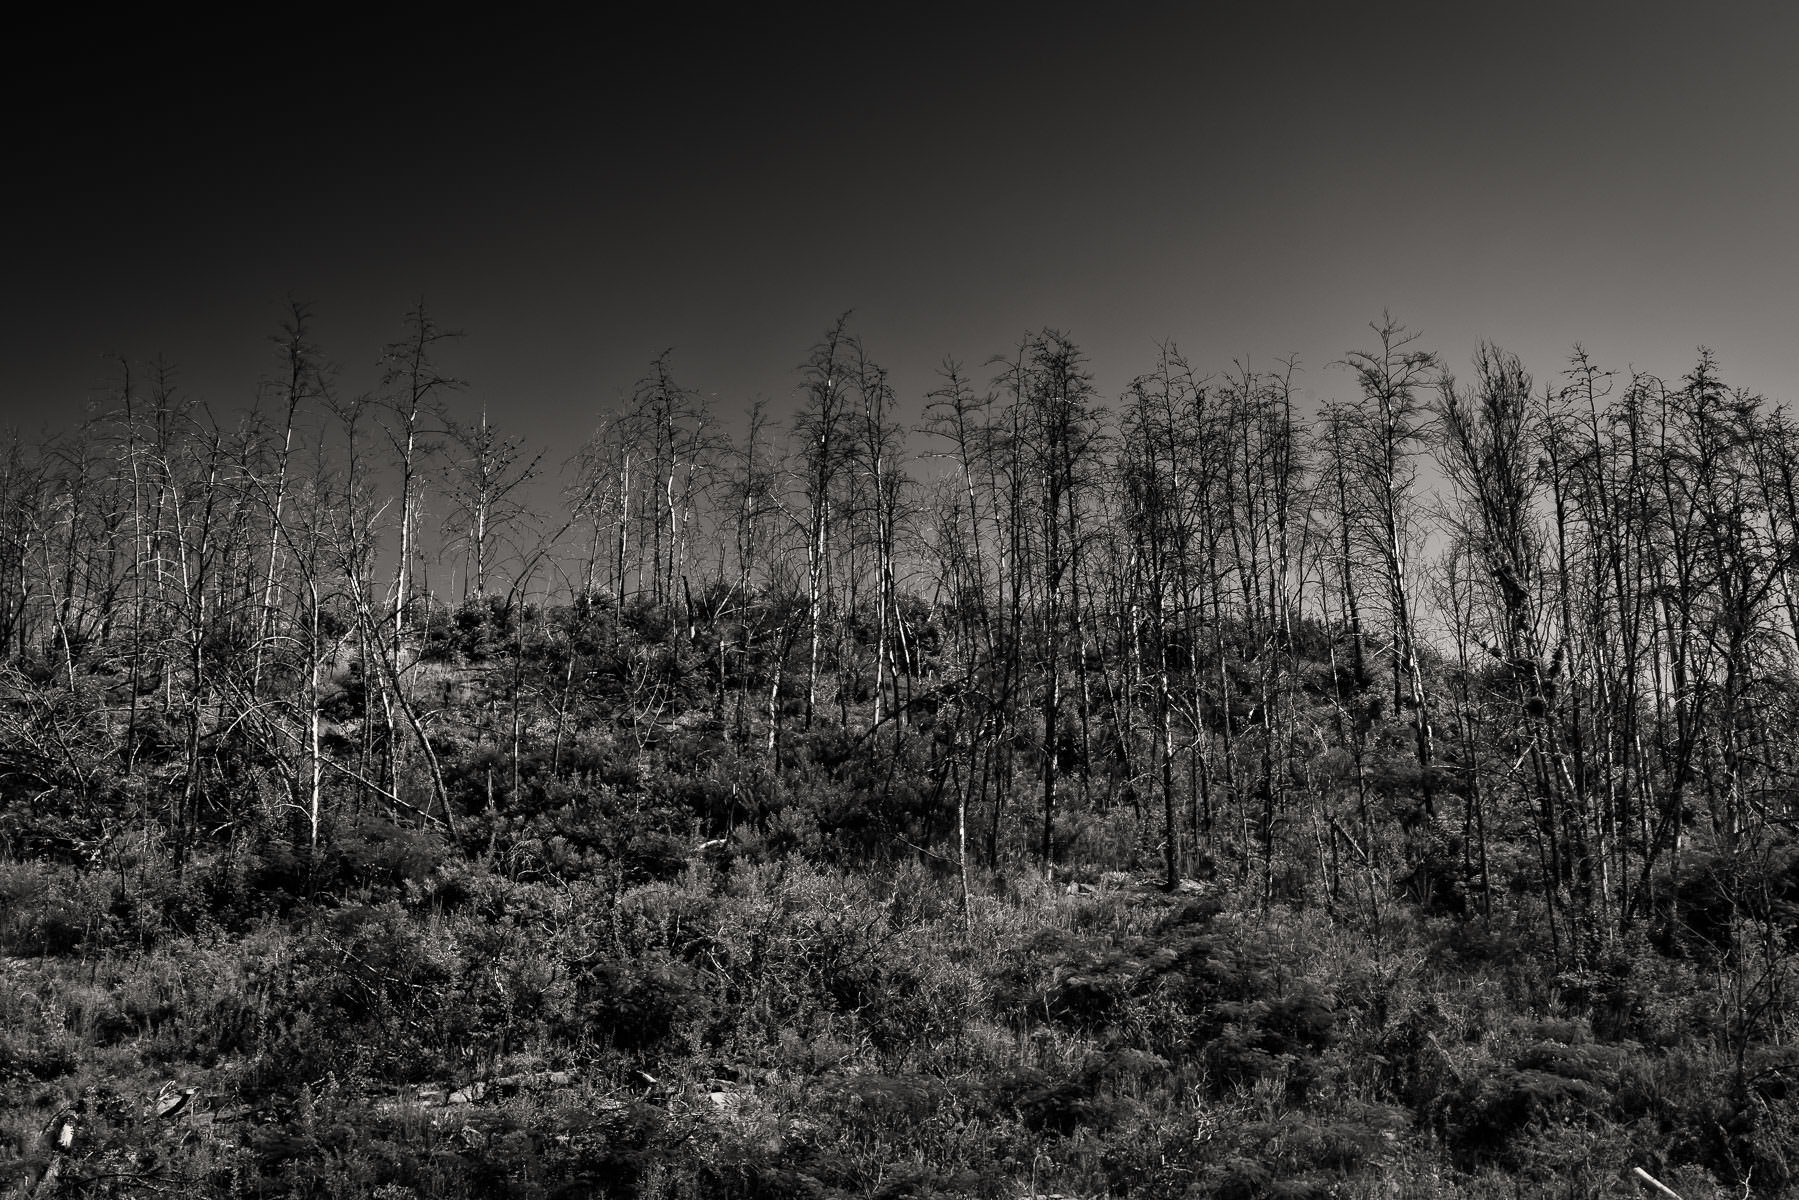 Barren trees grow on a hilltop in the Great Smoky Mountains National Park, Tennessee.